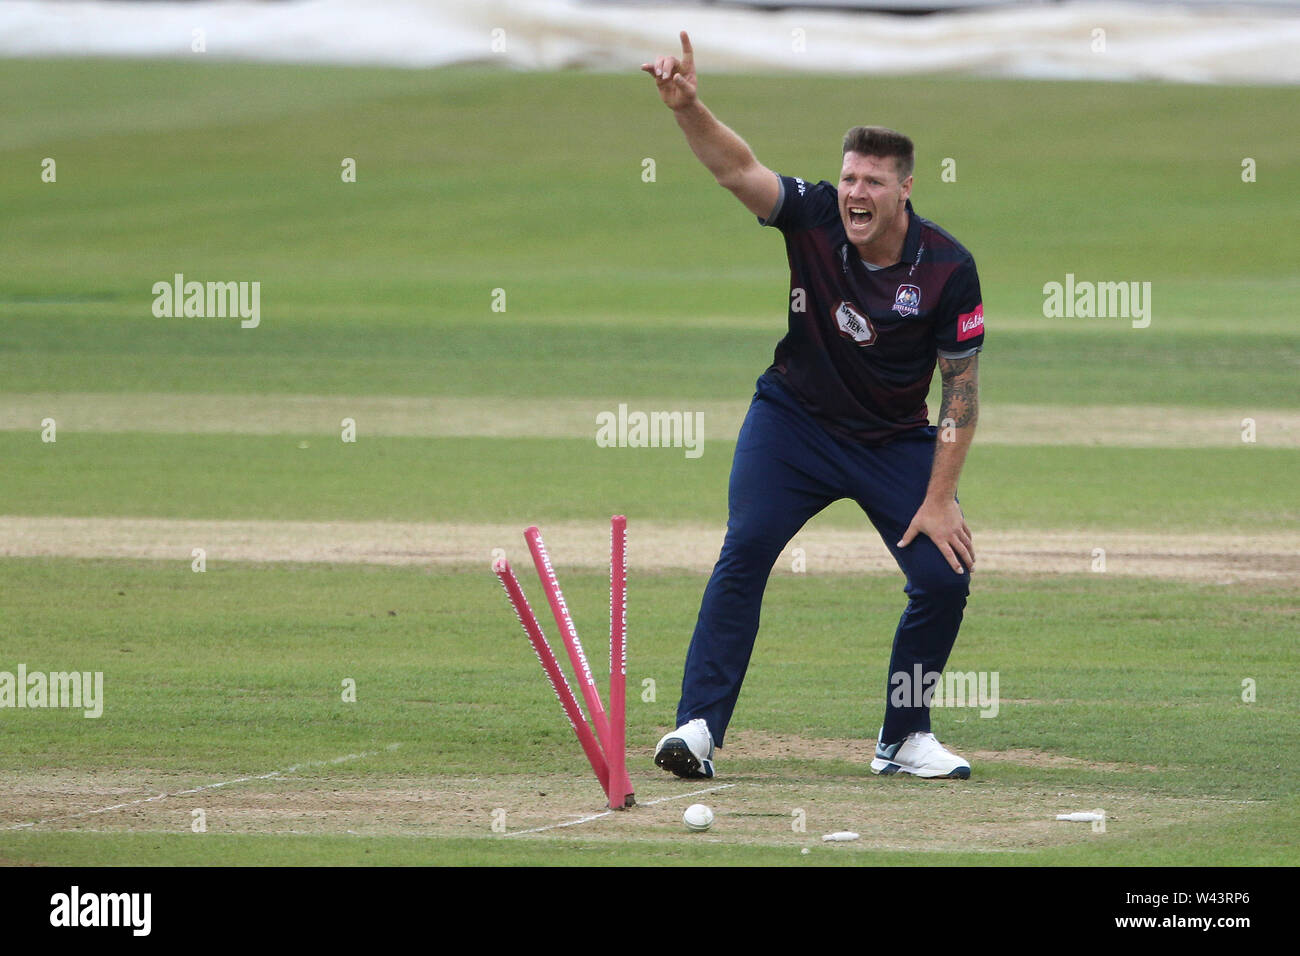 CHESTER LE STREET, ENGLAND 19th July 2019. 2019. Matt Coles of Northants appeals for a run out during the Vitality T20 Blast match between Durham County Cricket Club and Northamptonshire County Cricket Club at Emirates Riverside, Chester le Street on Friday 19th July 2019. (Credit: Mark Fletcher   MI News ) Credit: MI News & Sport /Alamy Live News - Stock Image